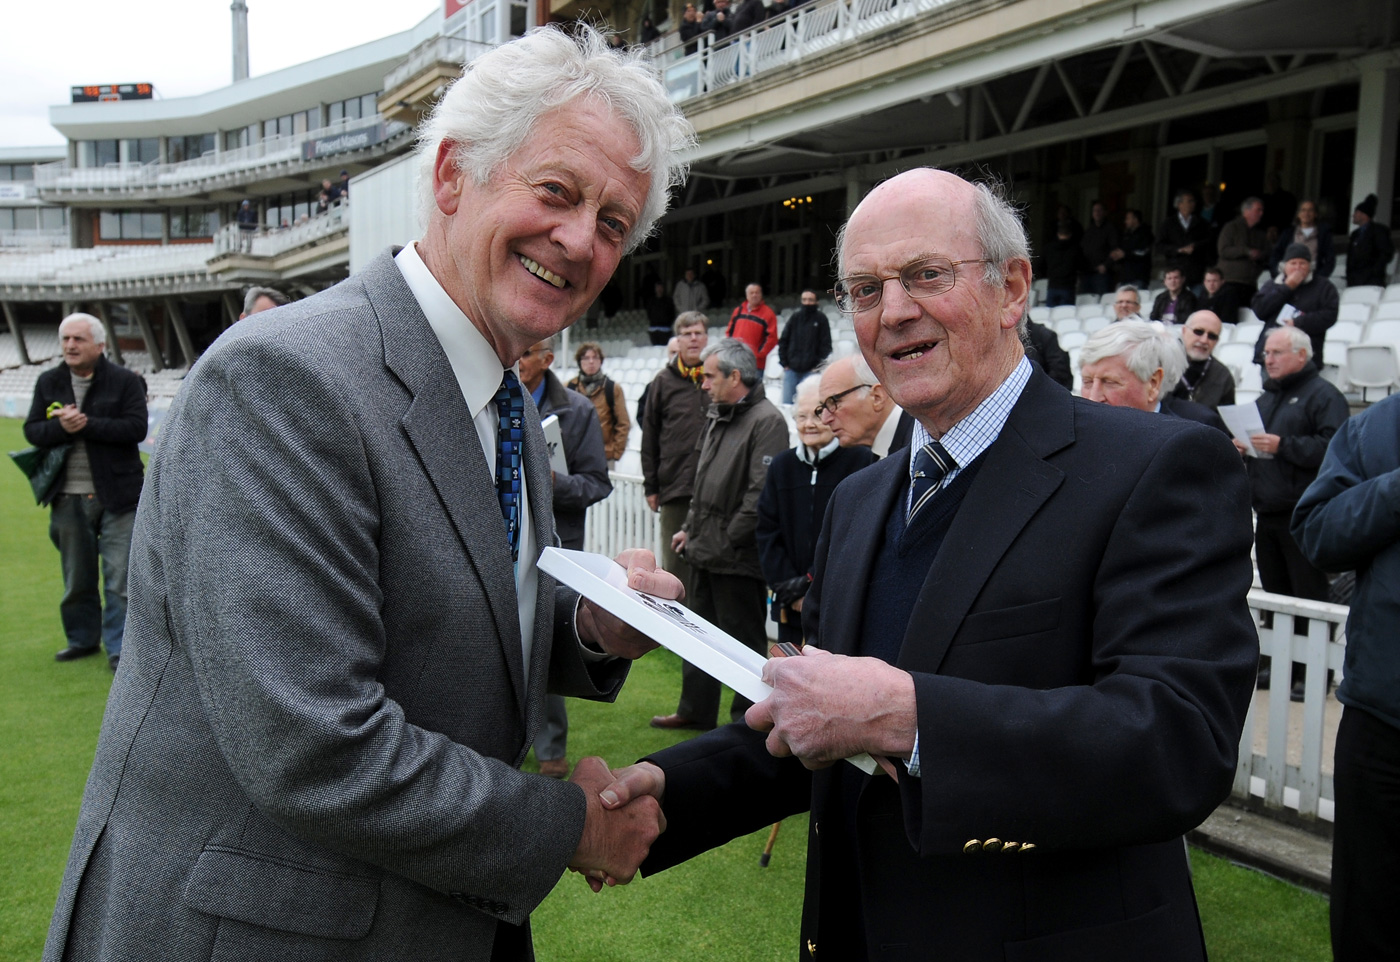 Pat Pocock (left), as Surrey's deputy president in 2014, presents certificates to members who had been with the club for 60 or more years